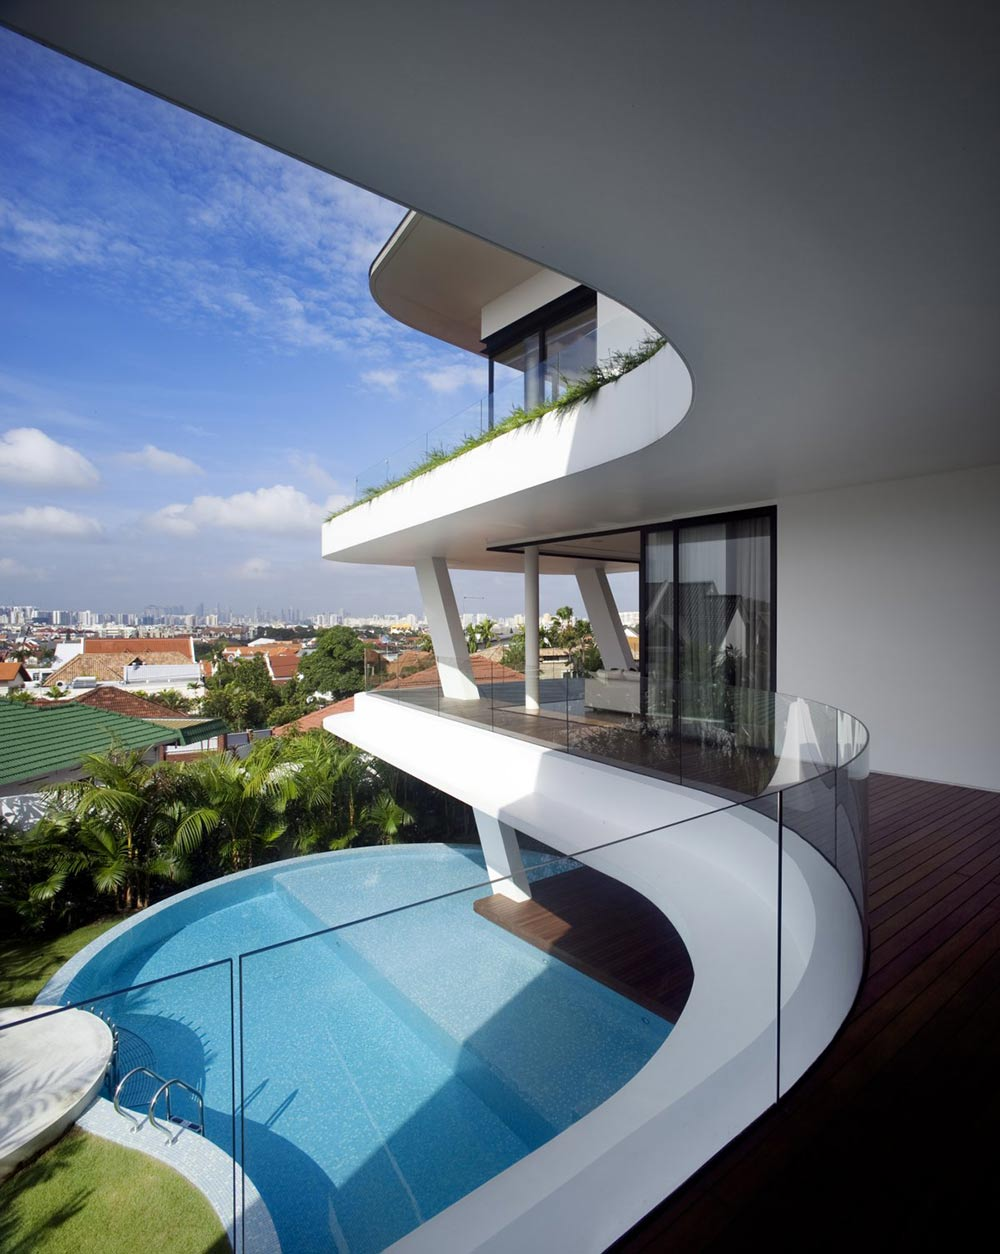 Balcony, Pool View, Ninety7 @ Siglap Road House by Aamer Architects